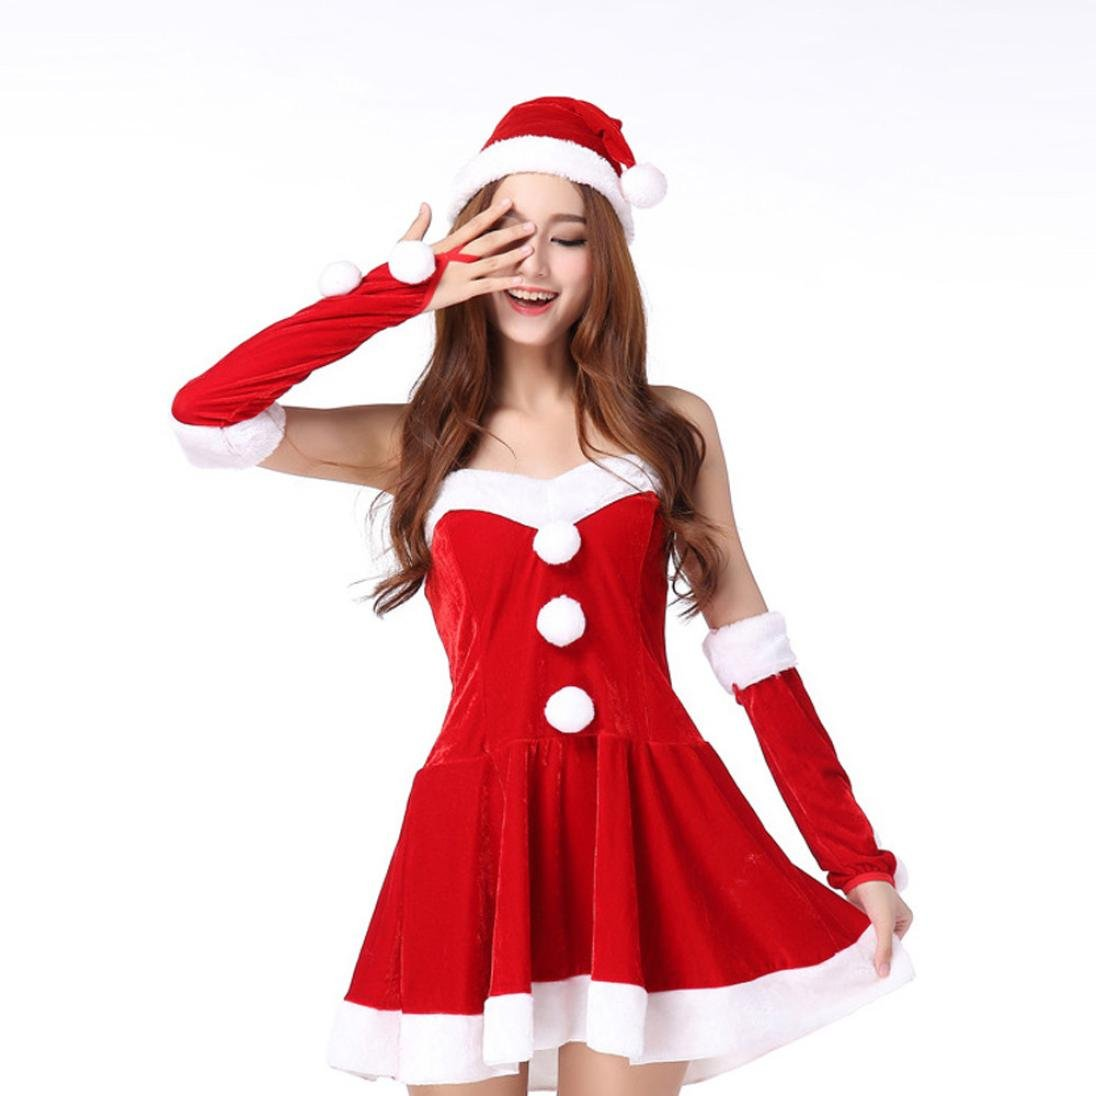 Women Christmas Party Dress, Franterd Ladies Santa Costume Cosplay Suit (1, Red)